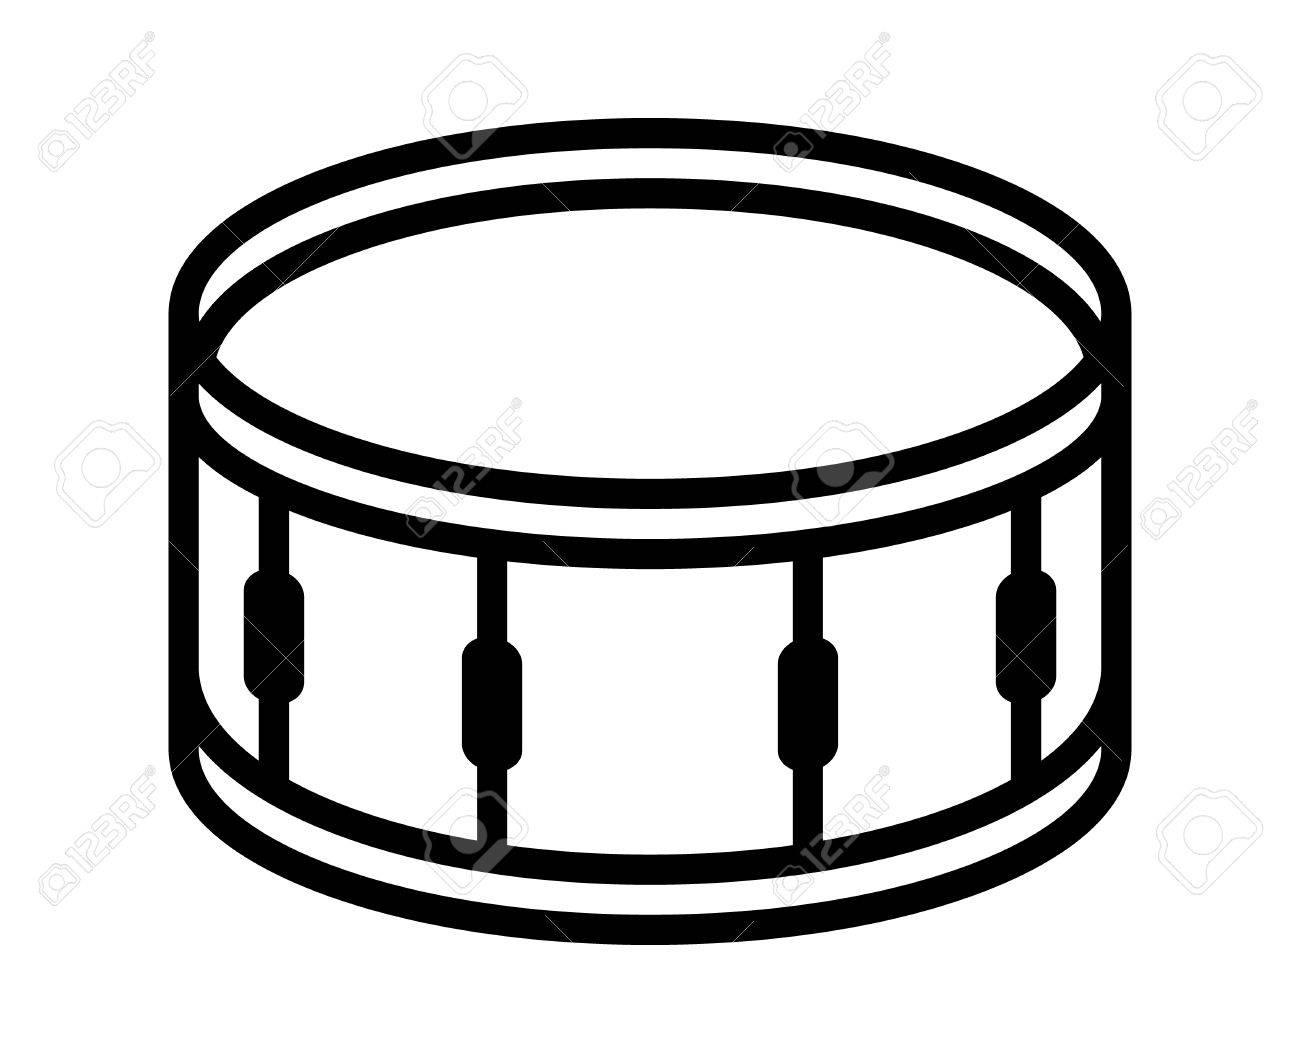 Snare Drum Or Side Musical Instrument Line Art Vector Icon For Music Apps And Websites